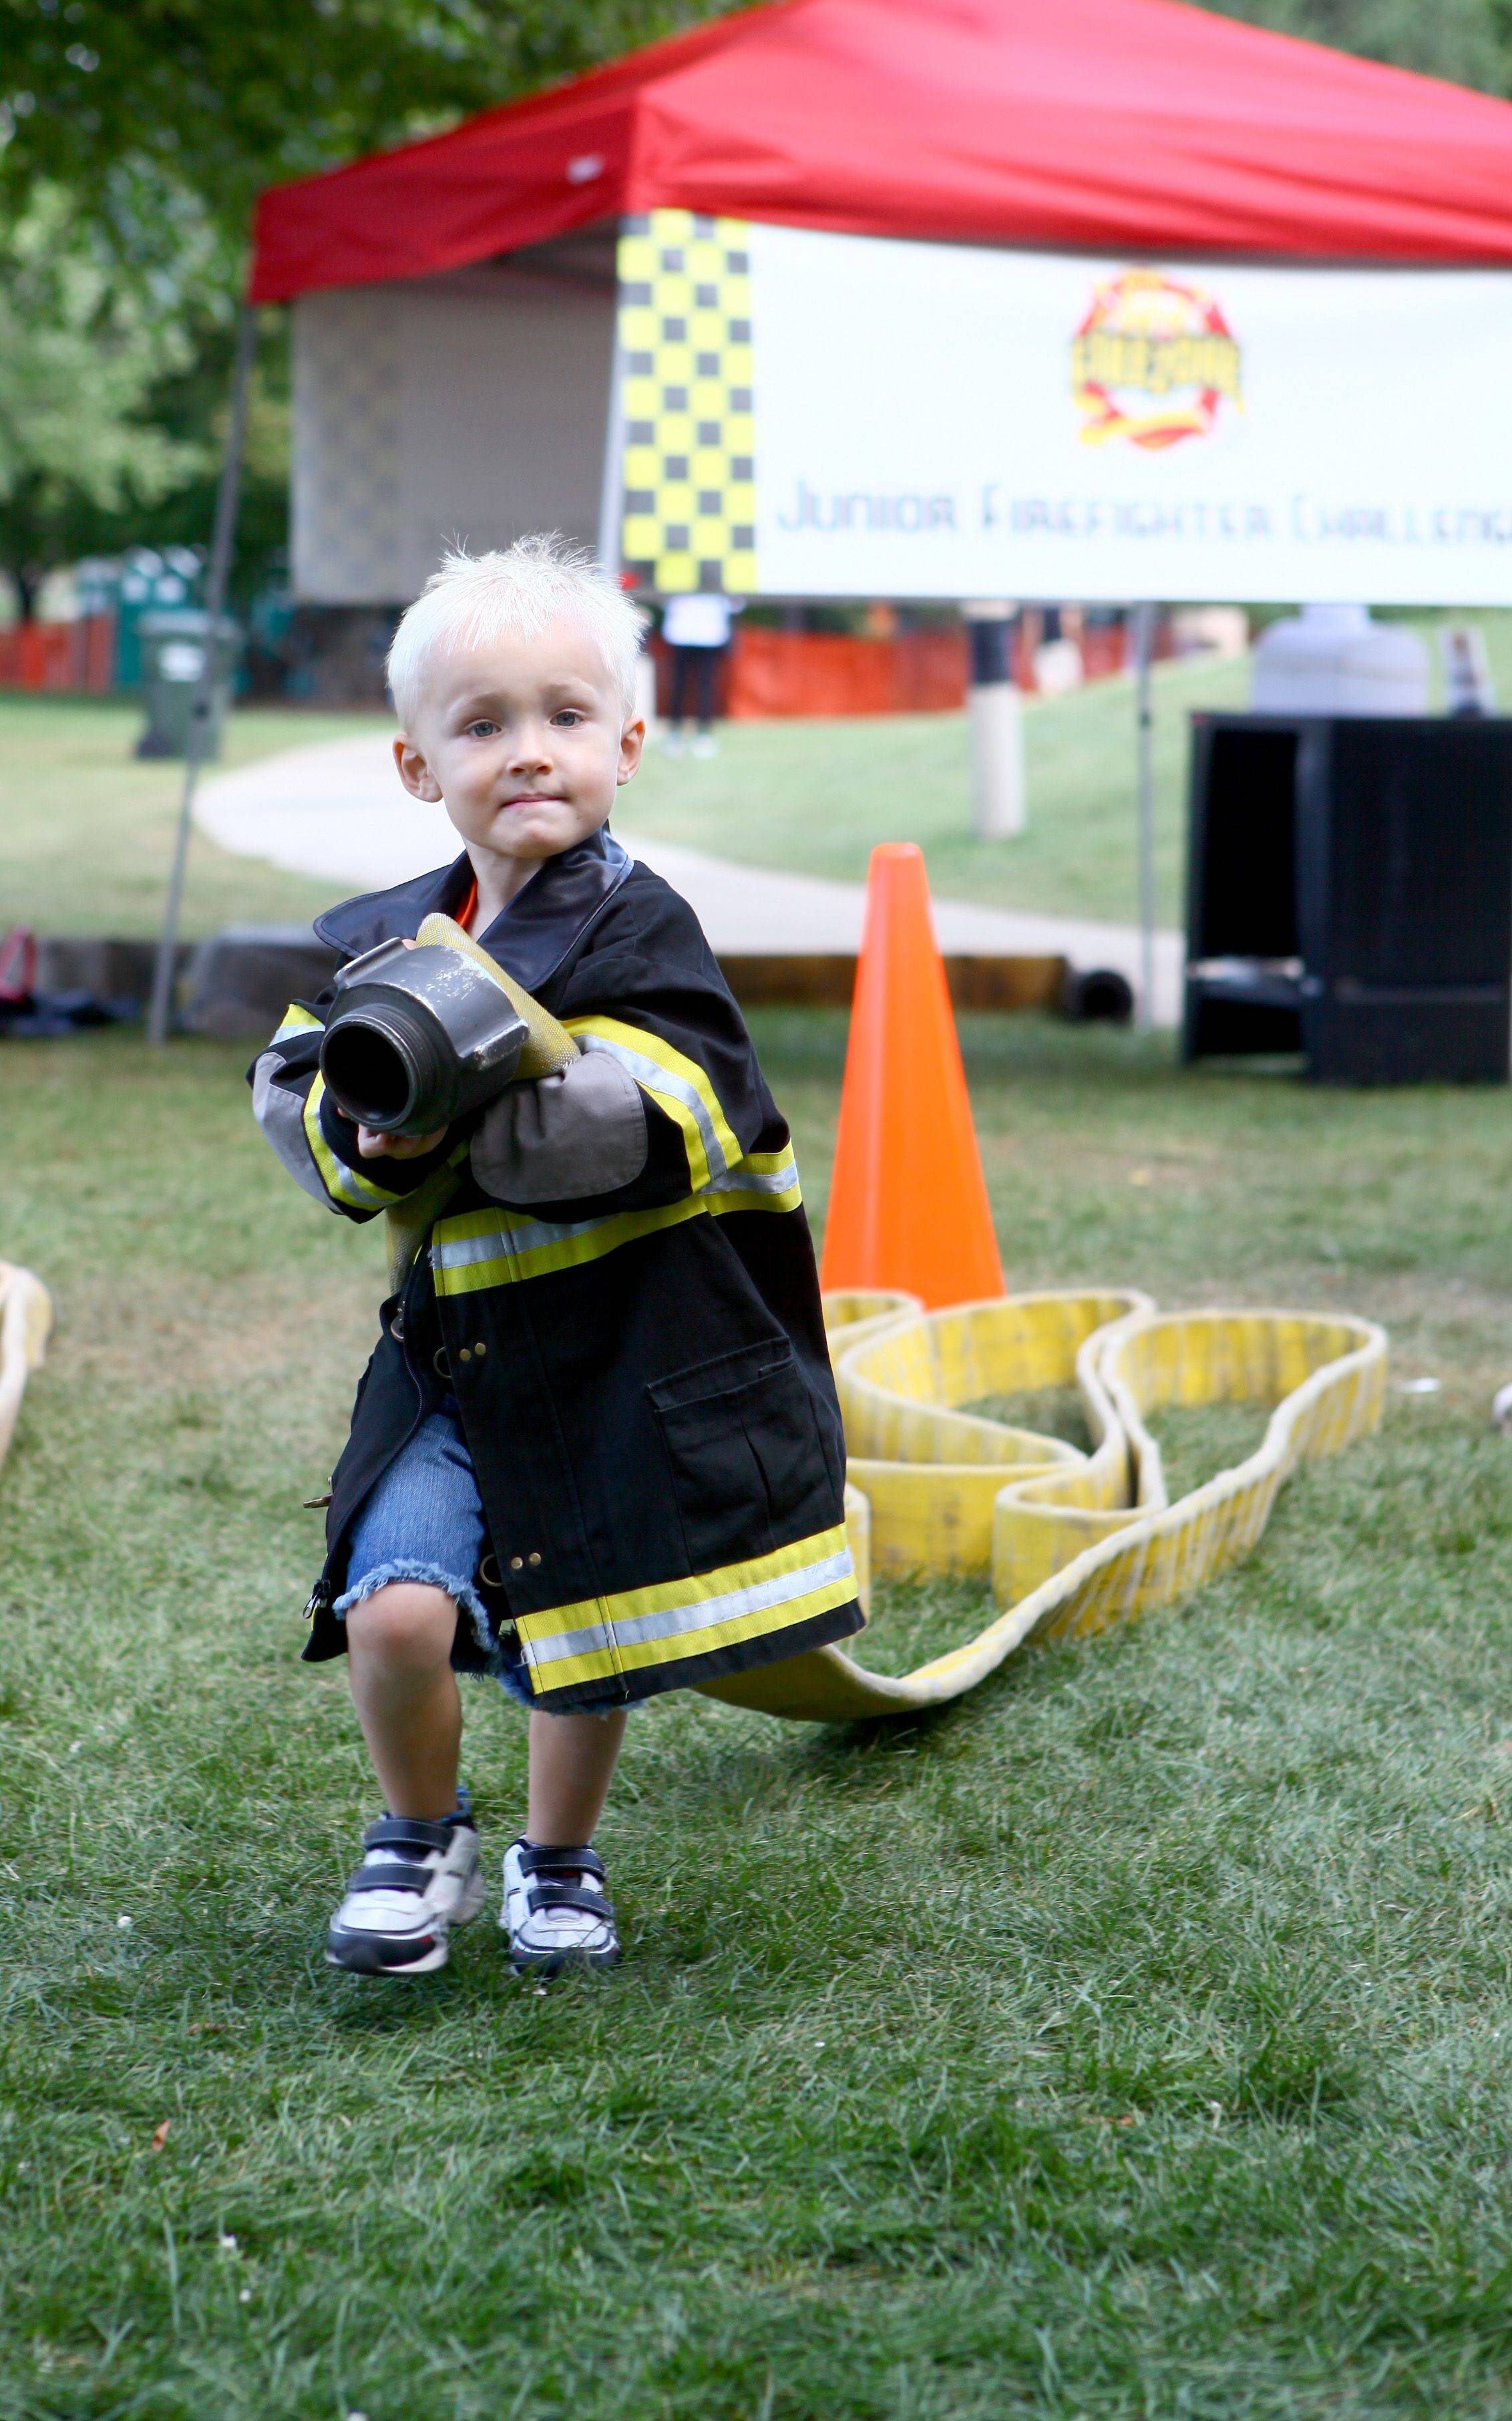 Ethan Frejd, 4, from Schaumburg carrys a fire hose across the Firezone course at September Fest Sunday afternoon in Schaumburg. Firefighters from all over the area work for Firezone to show kids and adults a little about the work a firefighter does.